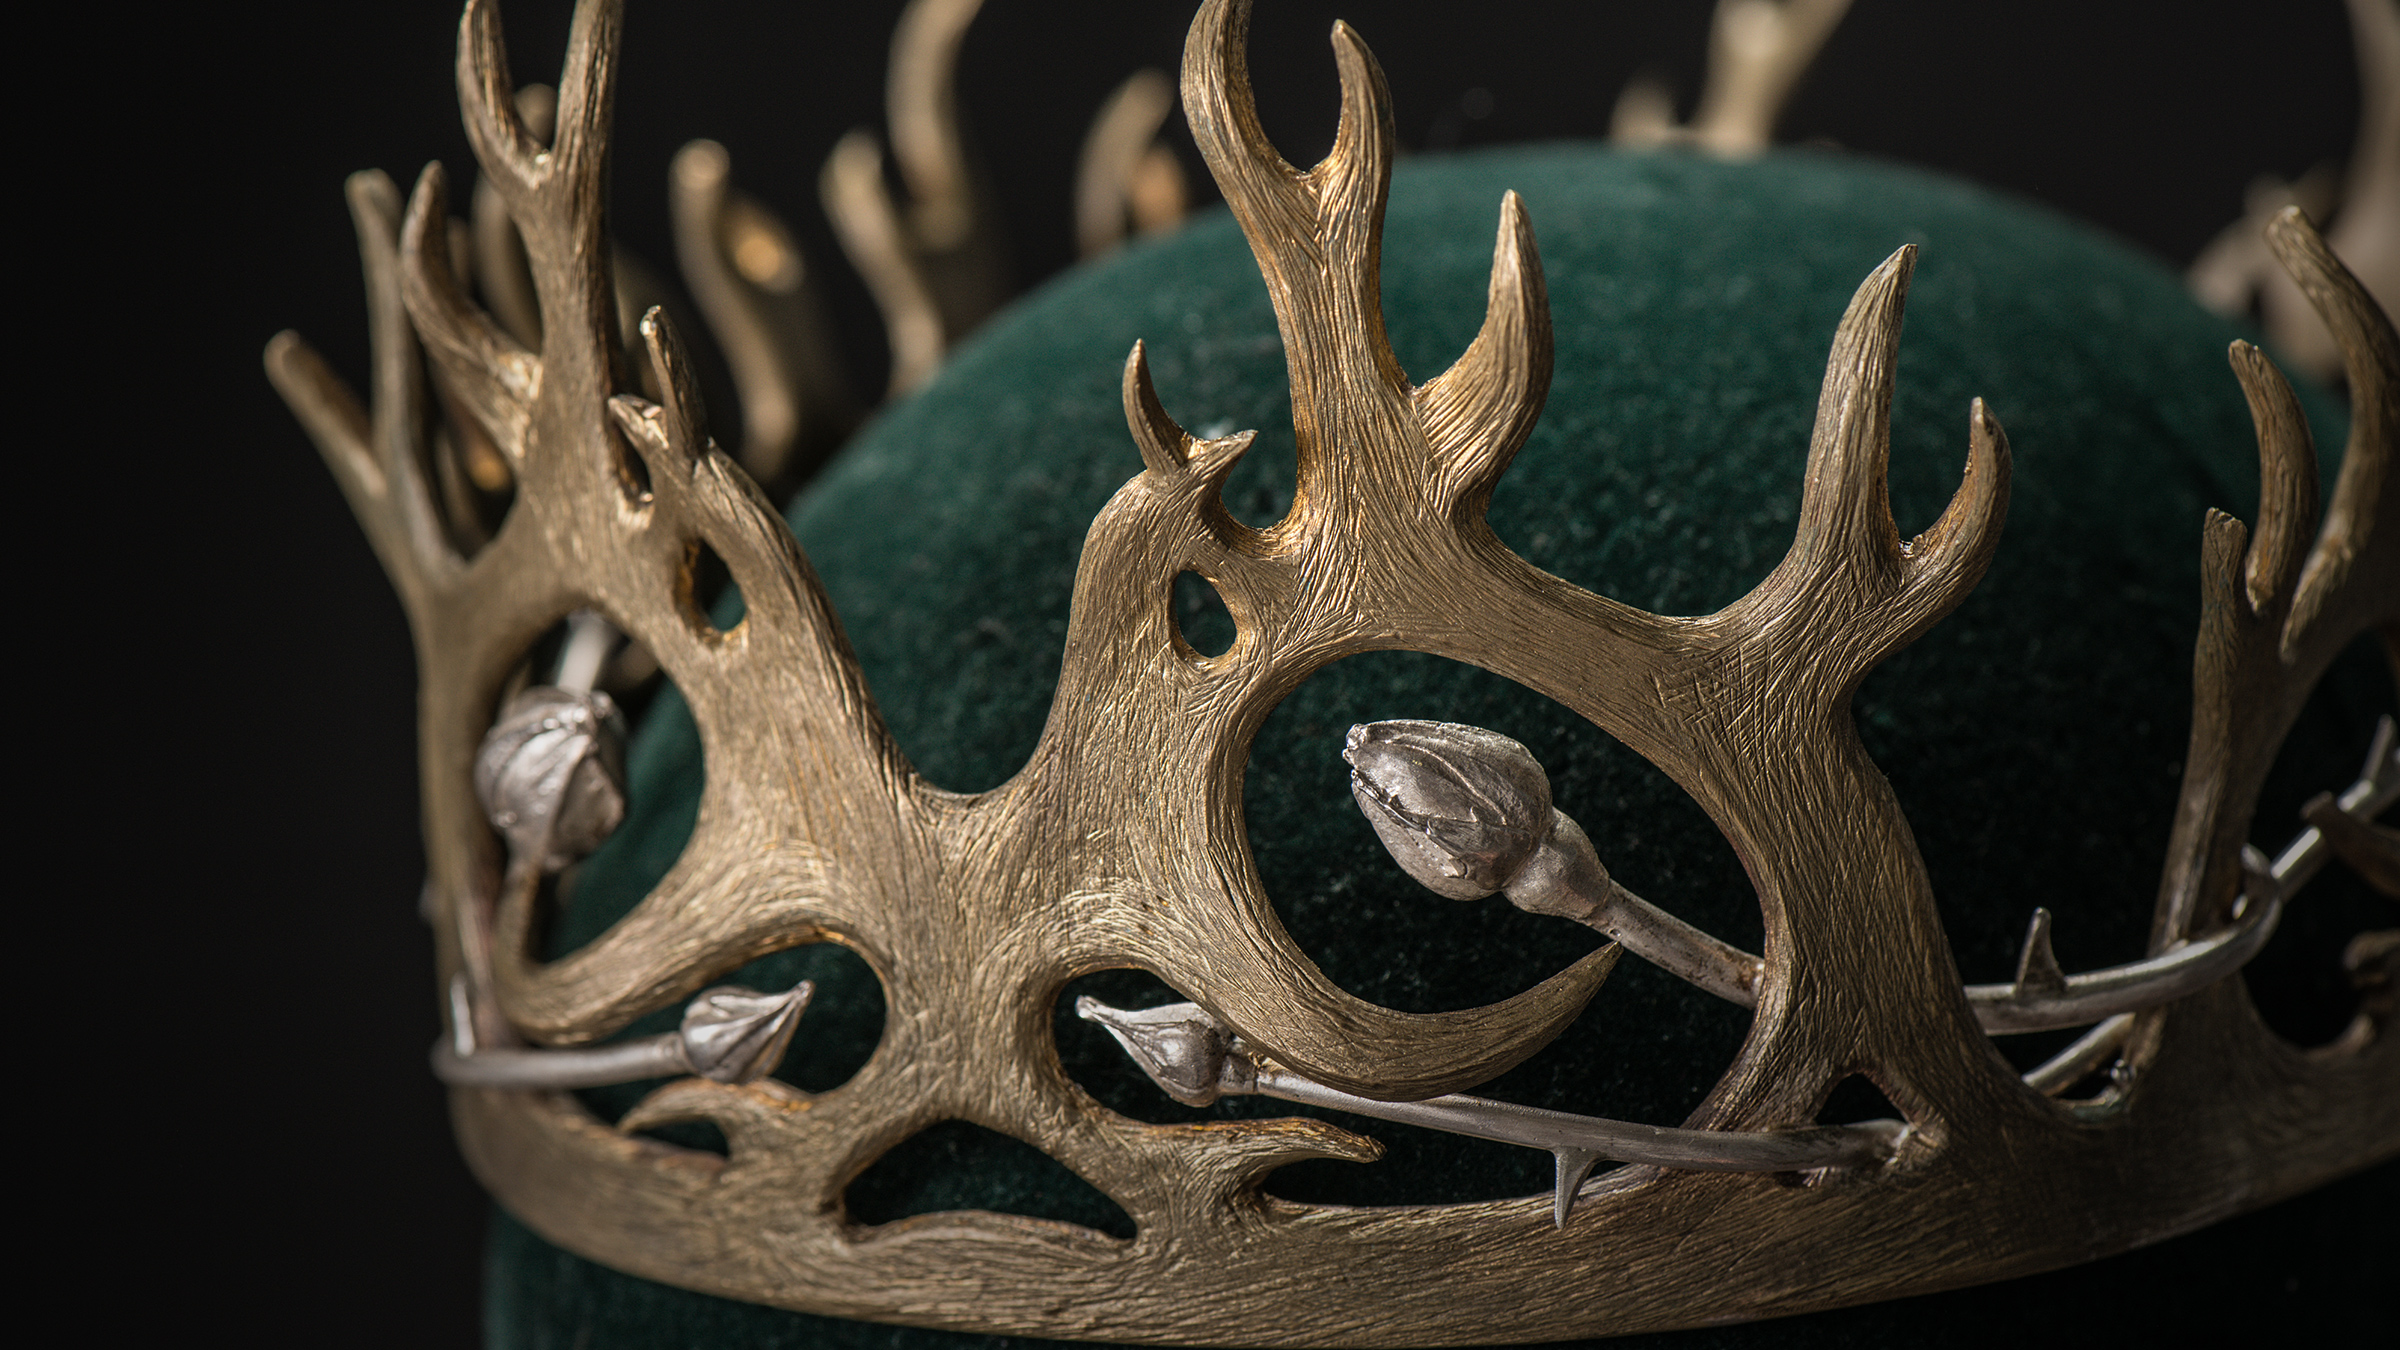 """""""Joffrey's crown has antlers, but roses are creeping within it. The idea is that slowly, they're beginning to wrap around and control him. We wanted to represent what the Tyrells were hoping would happen."""""""